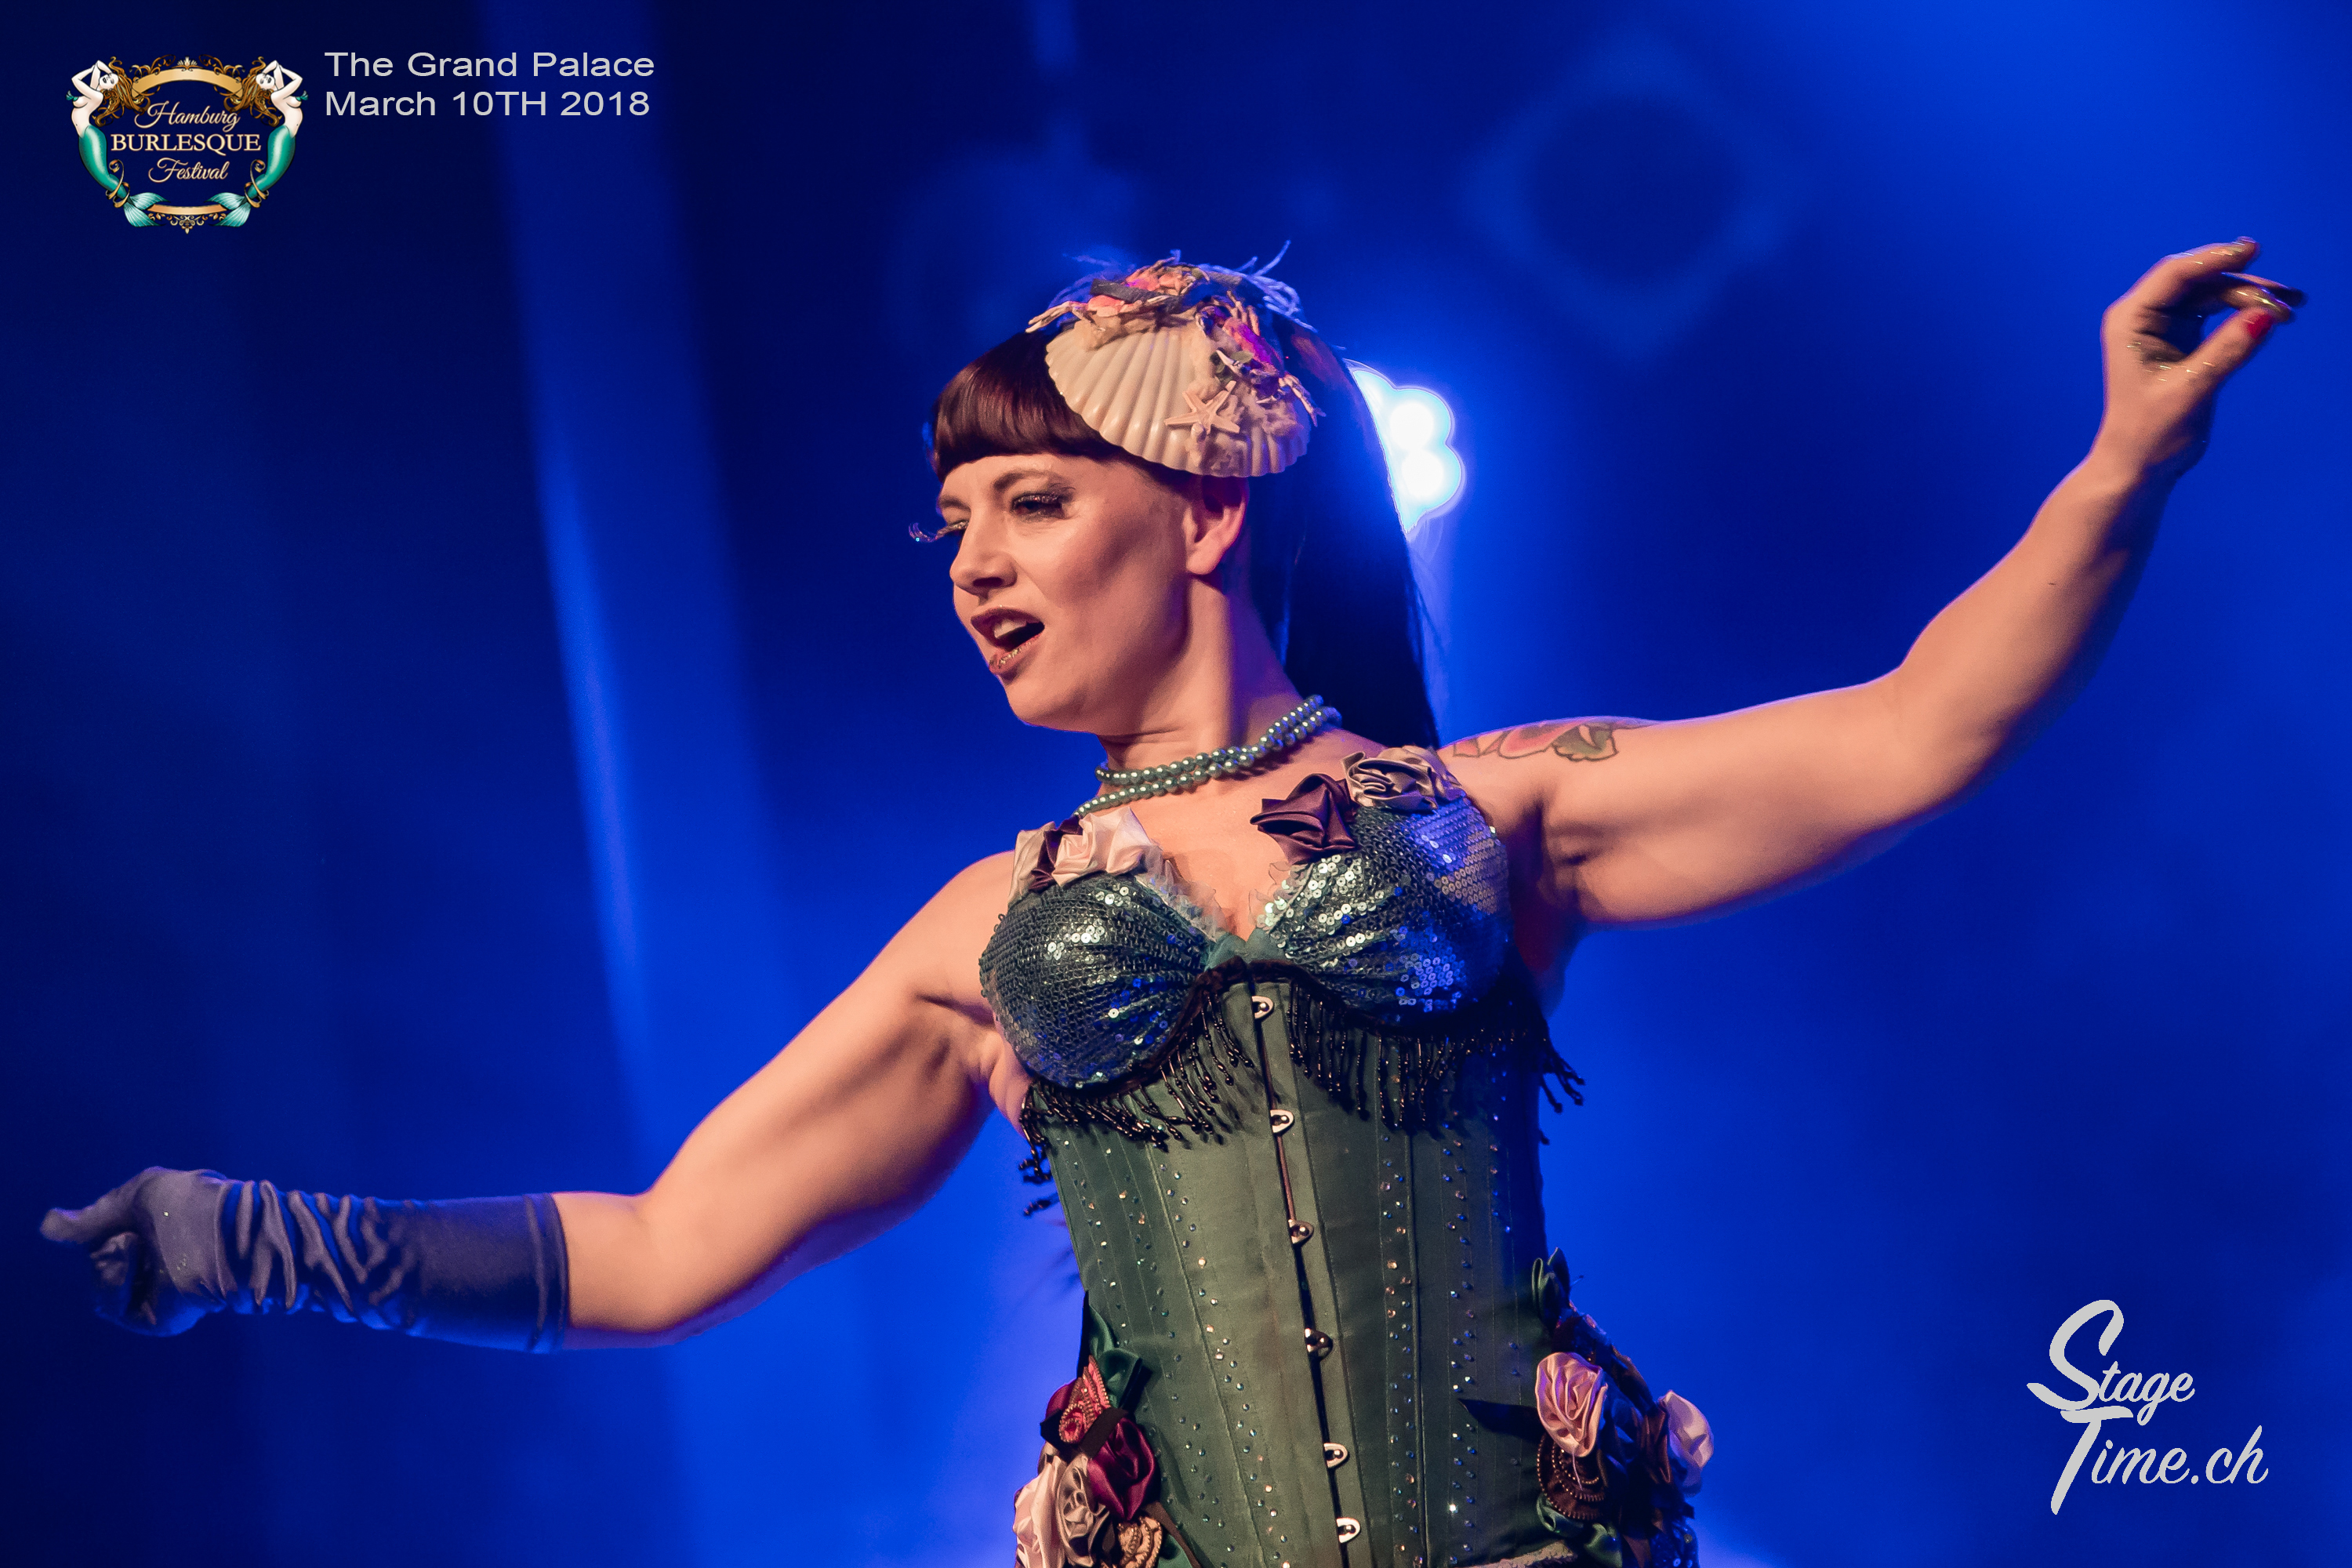 Hamburg_Burlesque_Festival_The_Grand_Palace__📷_Christoph_Gurtner_I_stagetime.ch-30